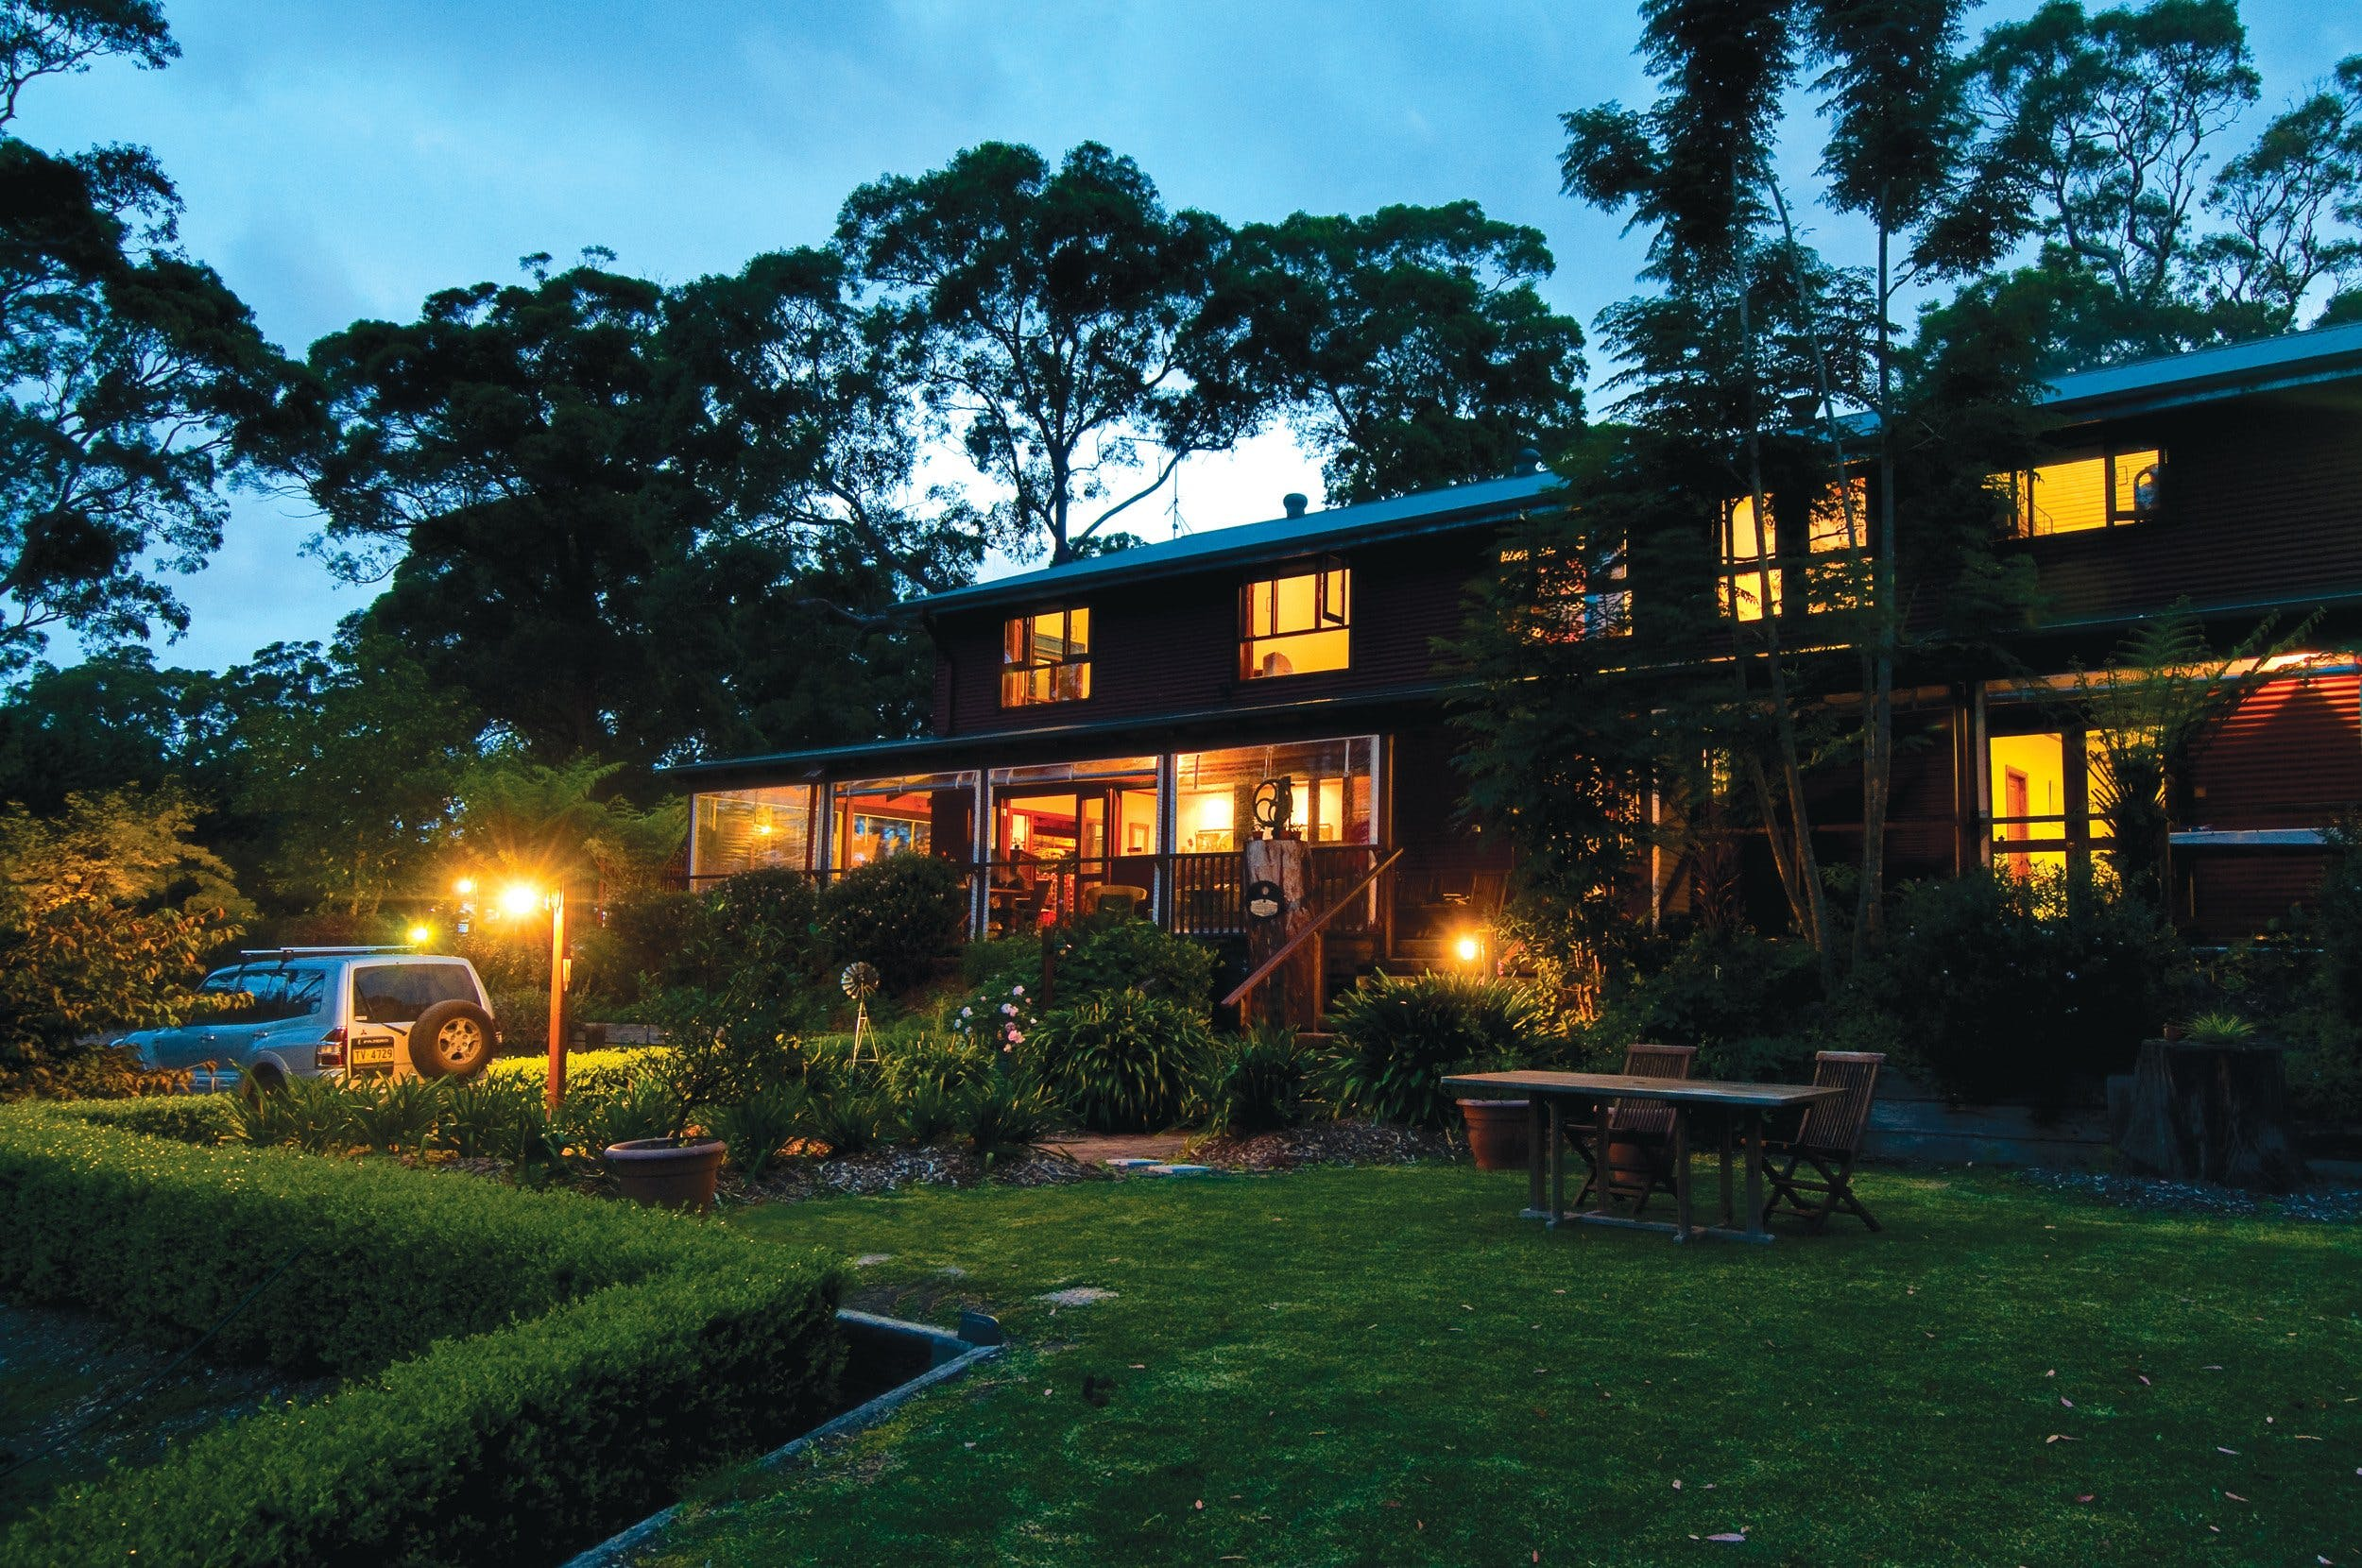 Bilpin Country Lodge - Townsville Tourism